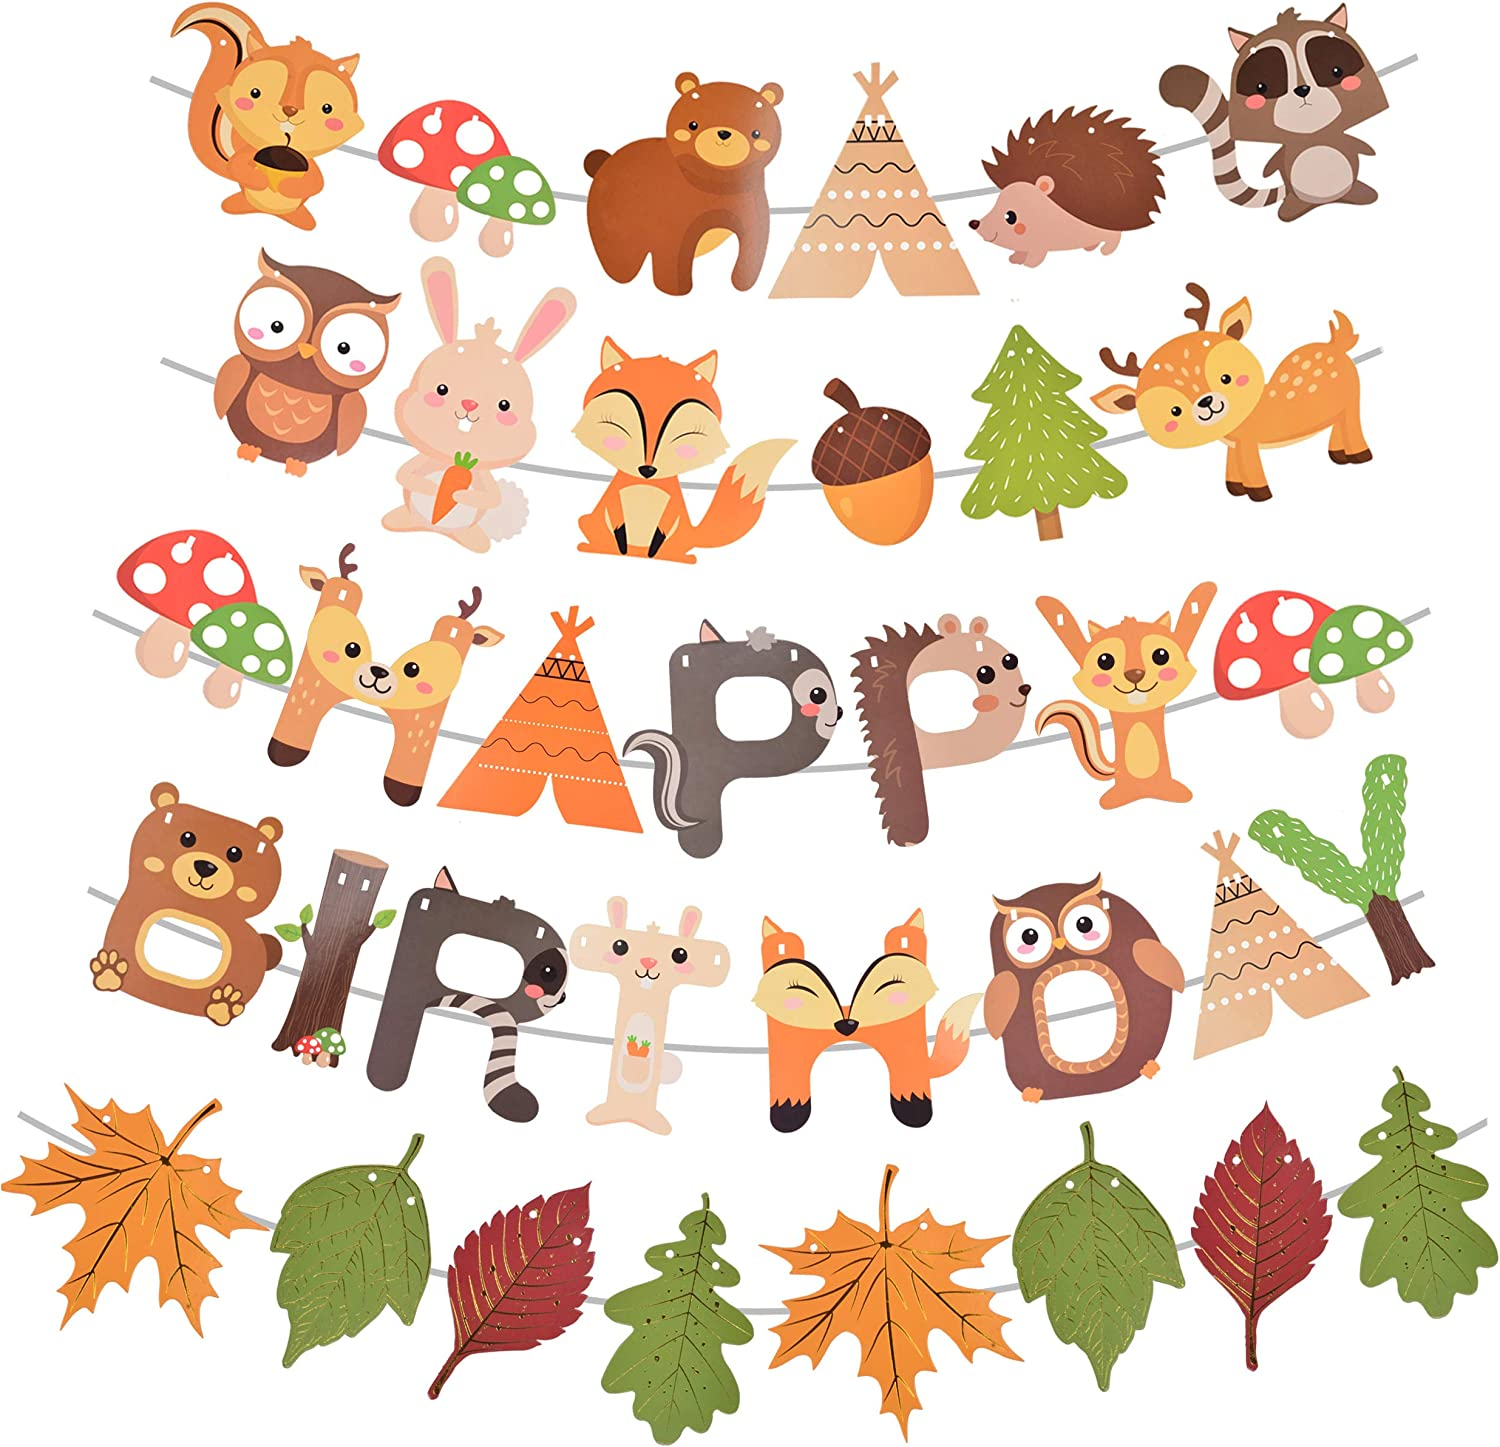 Woodland Animals Birthday Banner, Woodland Animals Party Favor, Woodland Animals Party Supplies for Animal Birthday Kids Birthday, Woodland Themed Happy Birthday Banner, for 1st 2nd 3rd 4th Bday